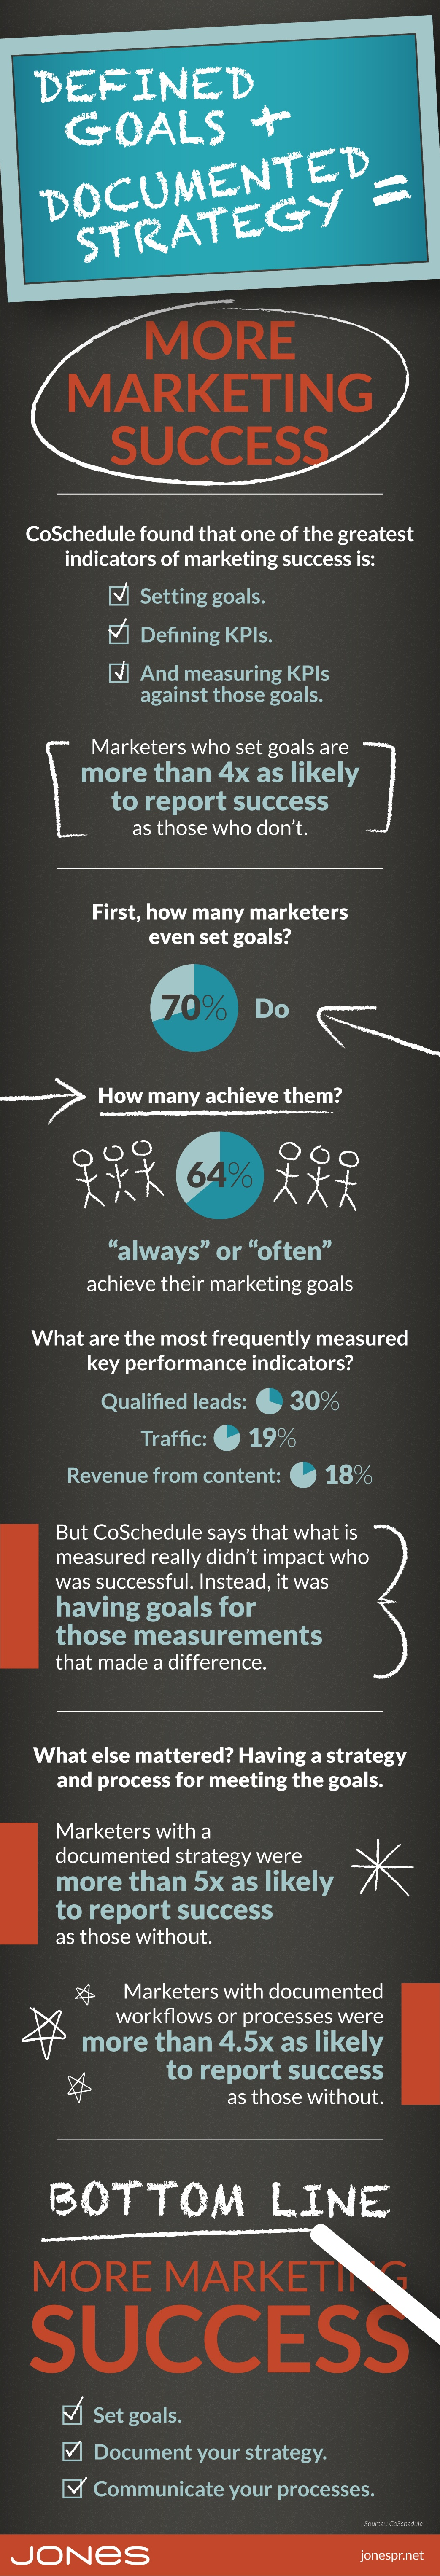 jones-infographic-marketing-goals-success